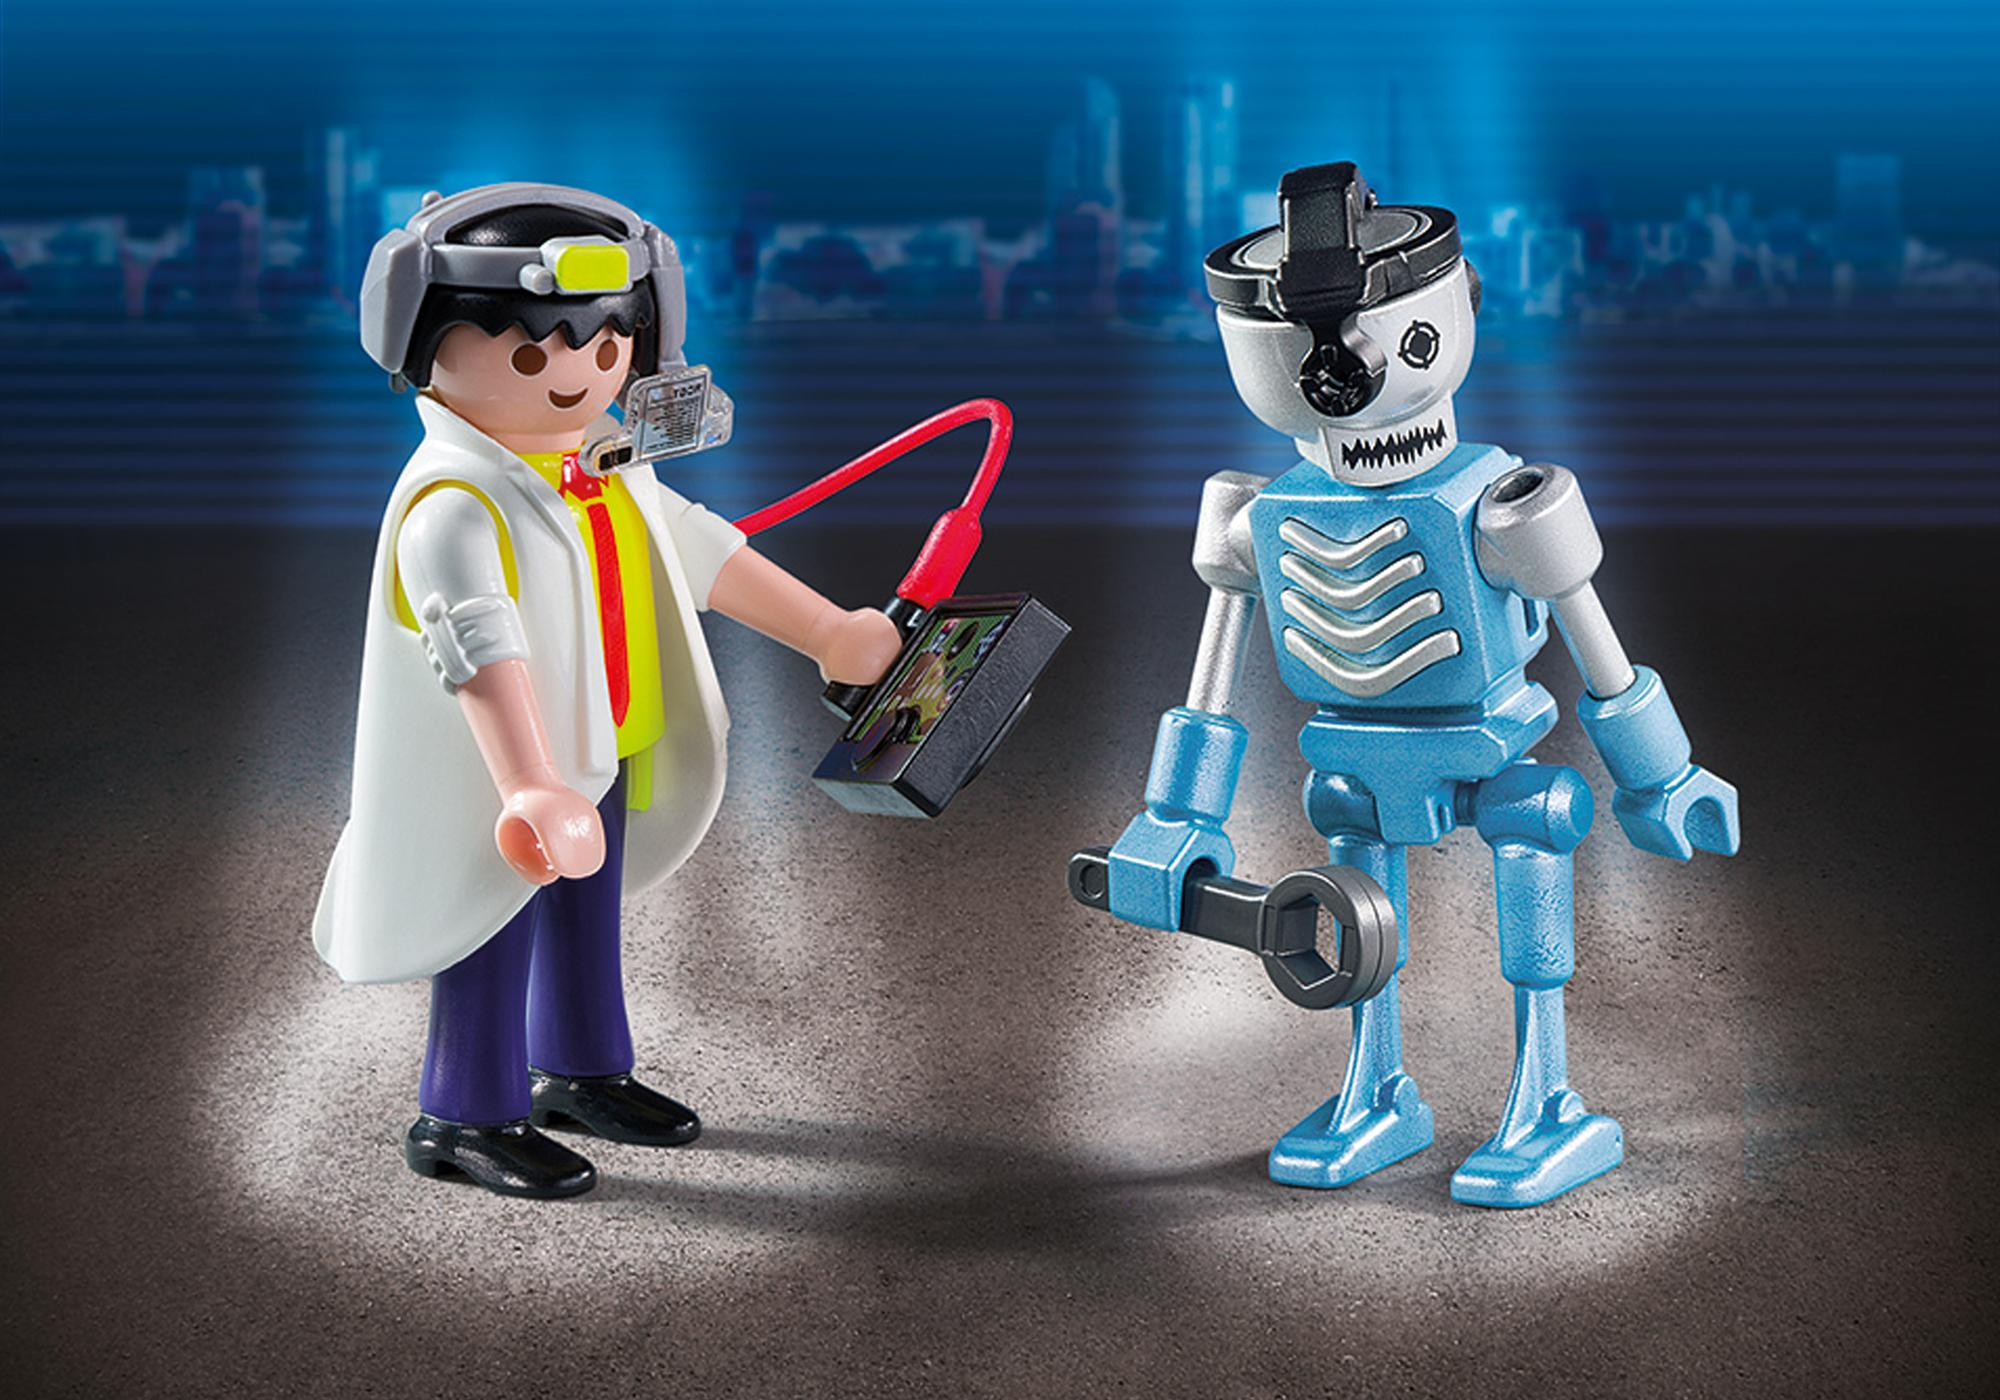 http://media.playmobil.com/i/playmobil/6844_product_detail/Duo Pack Científico y Robot